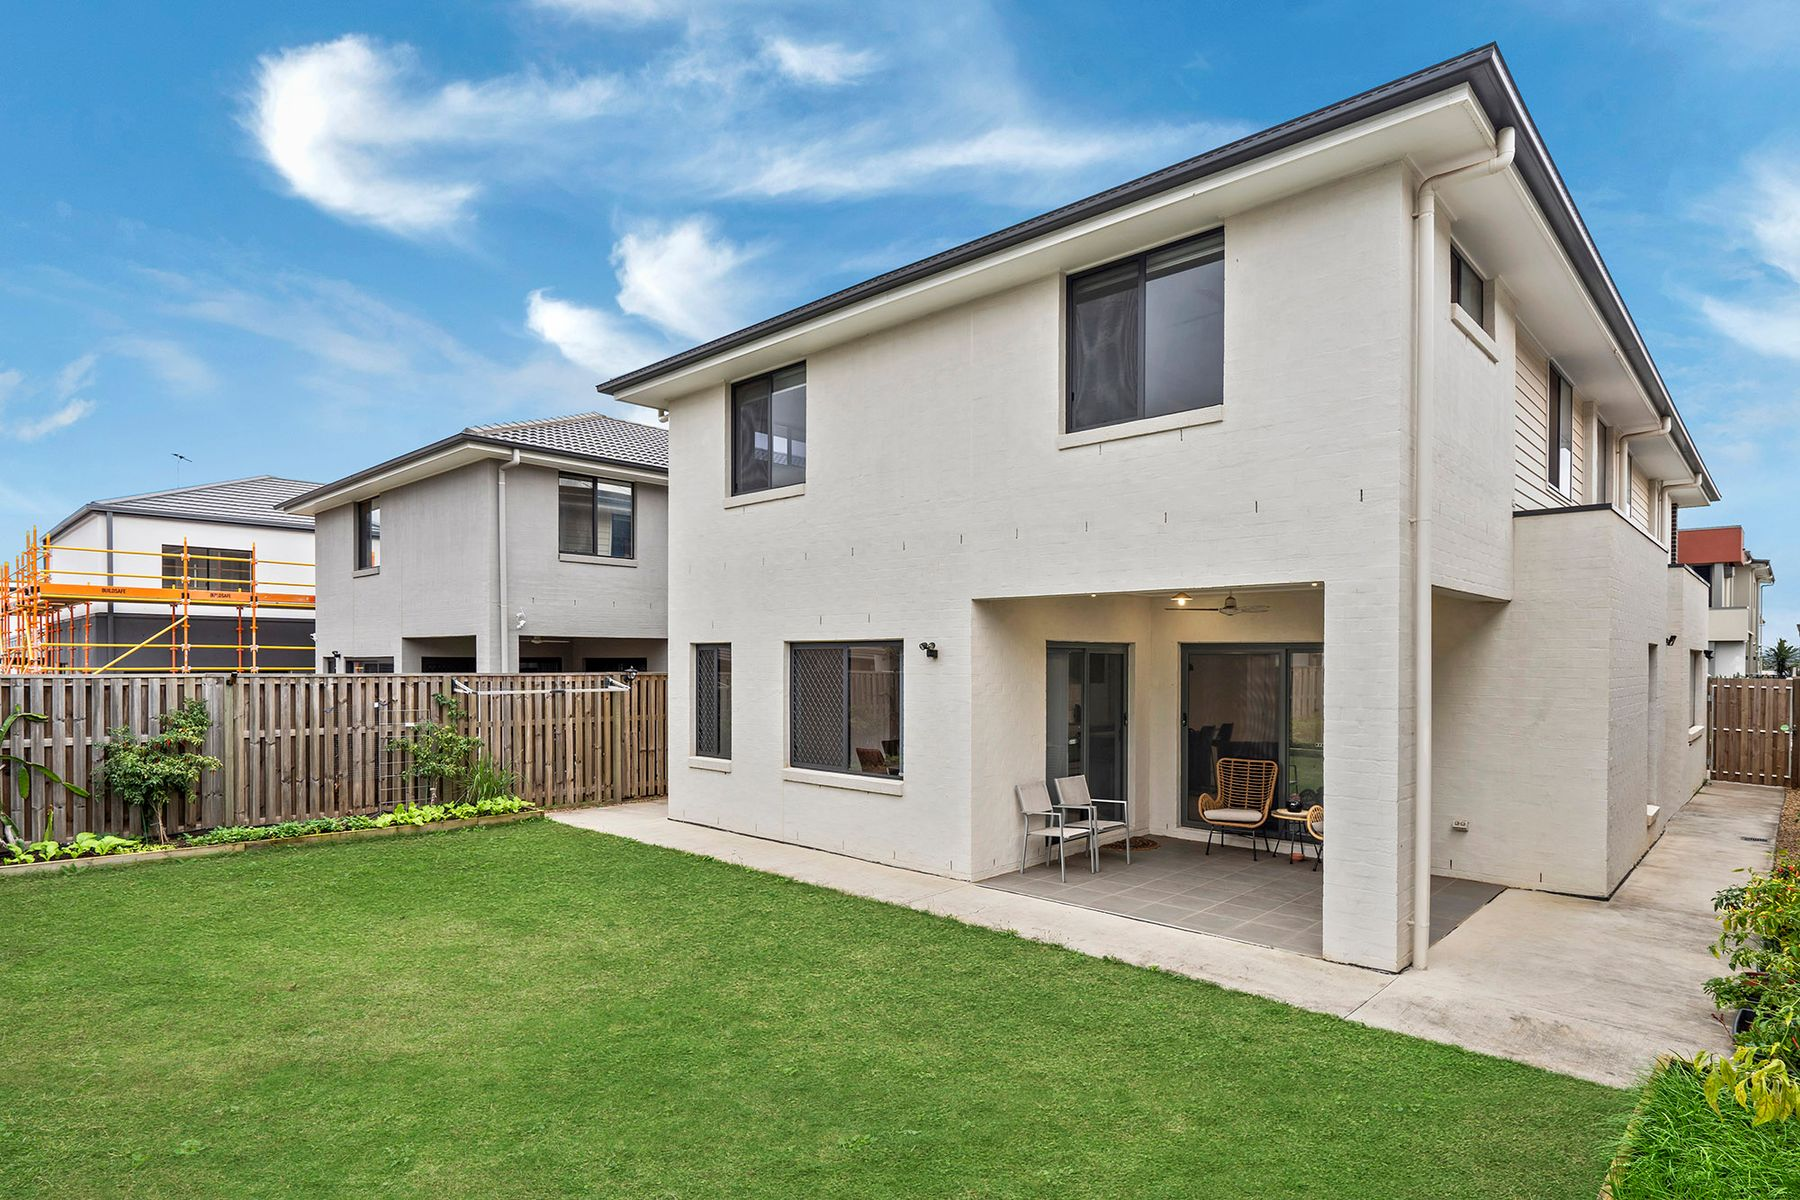 11 Paragon Street, Rochedale, QLD 4123